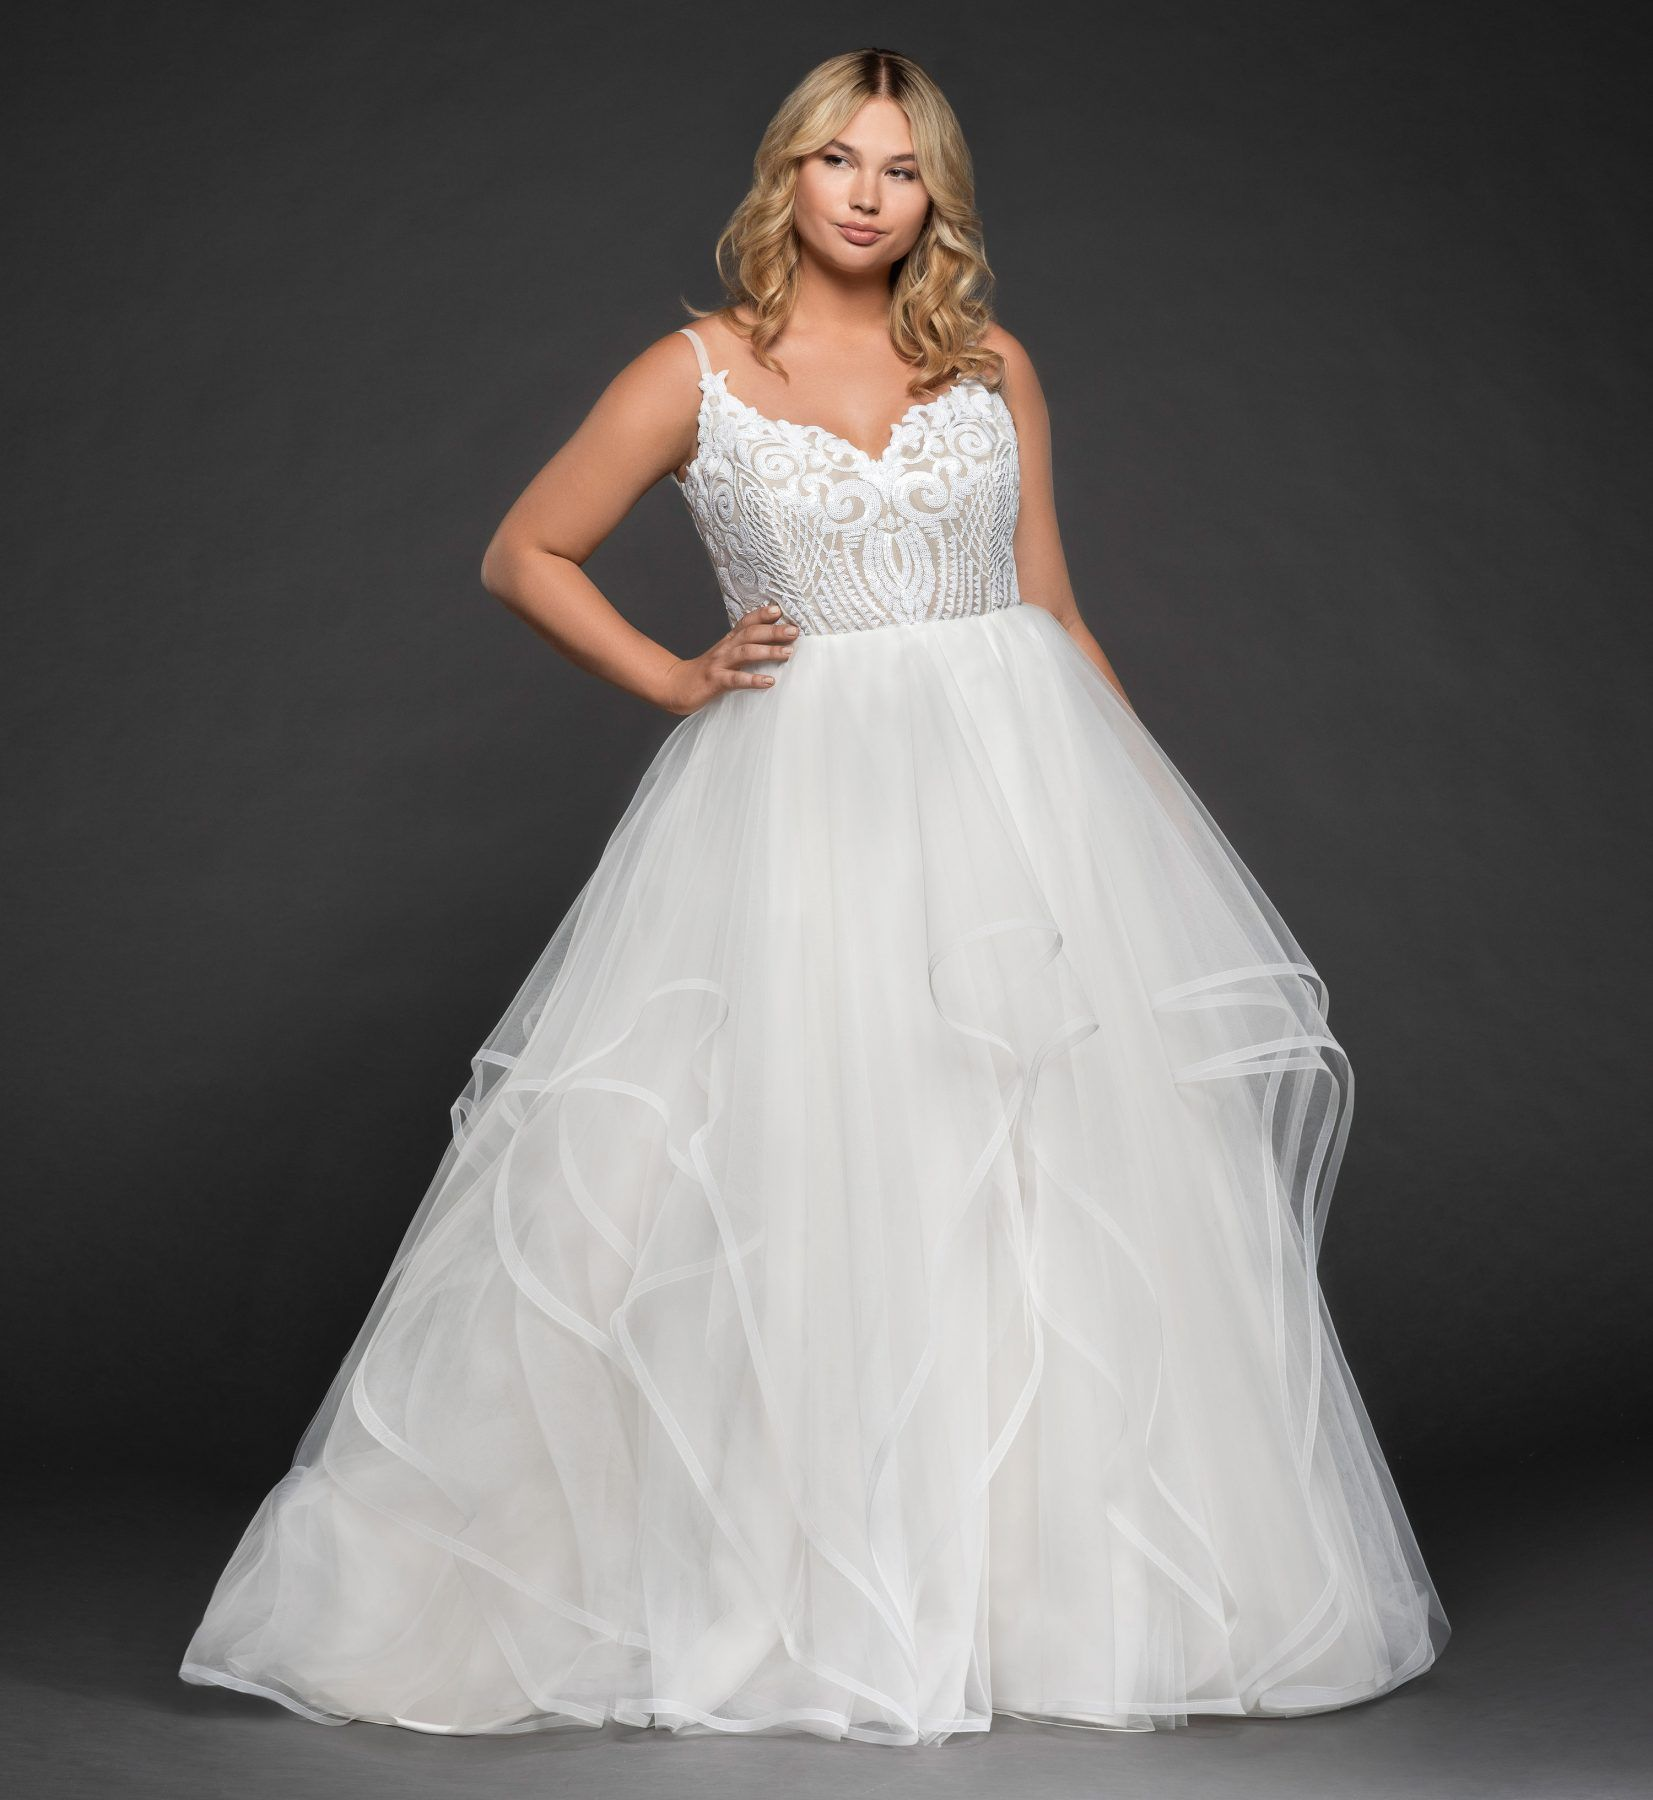 Beaded bodice tulle skirt ball gown plus size wedding